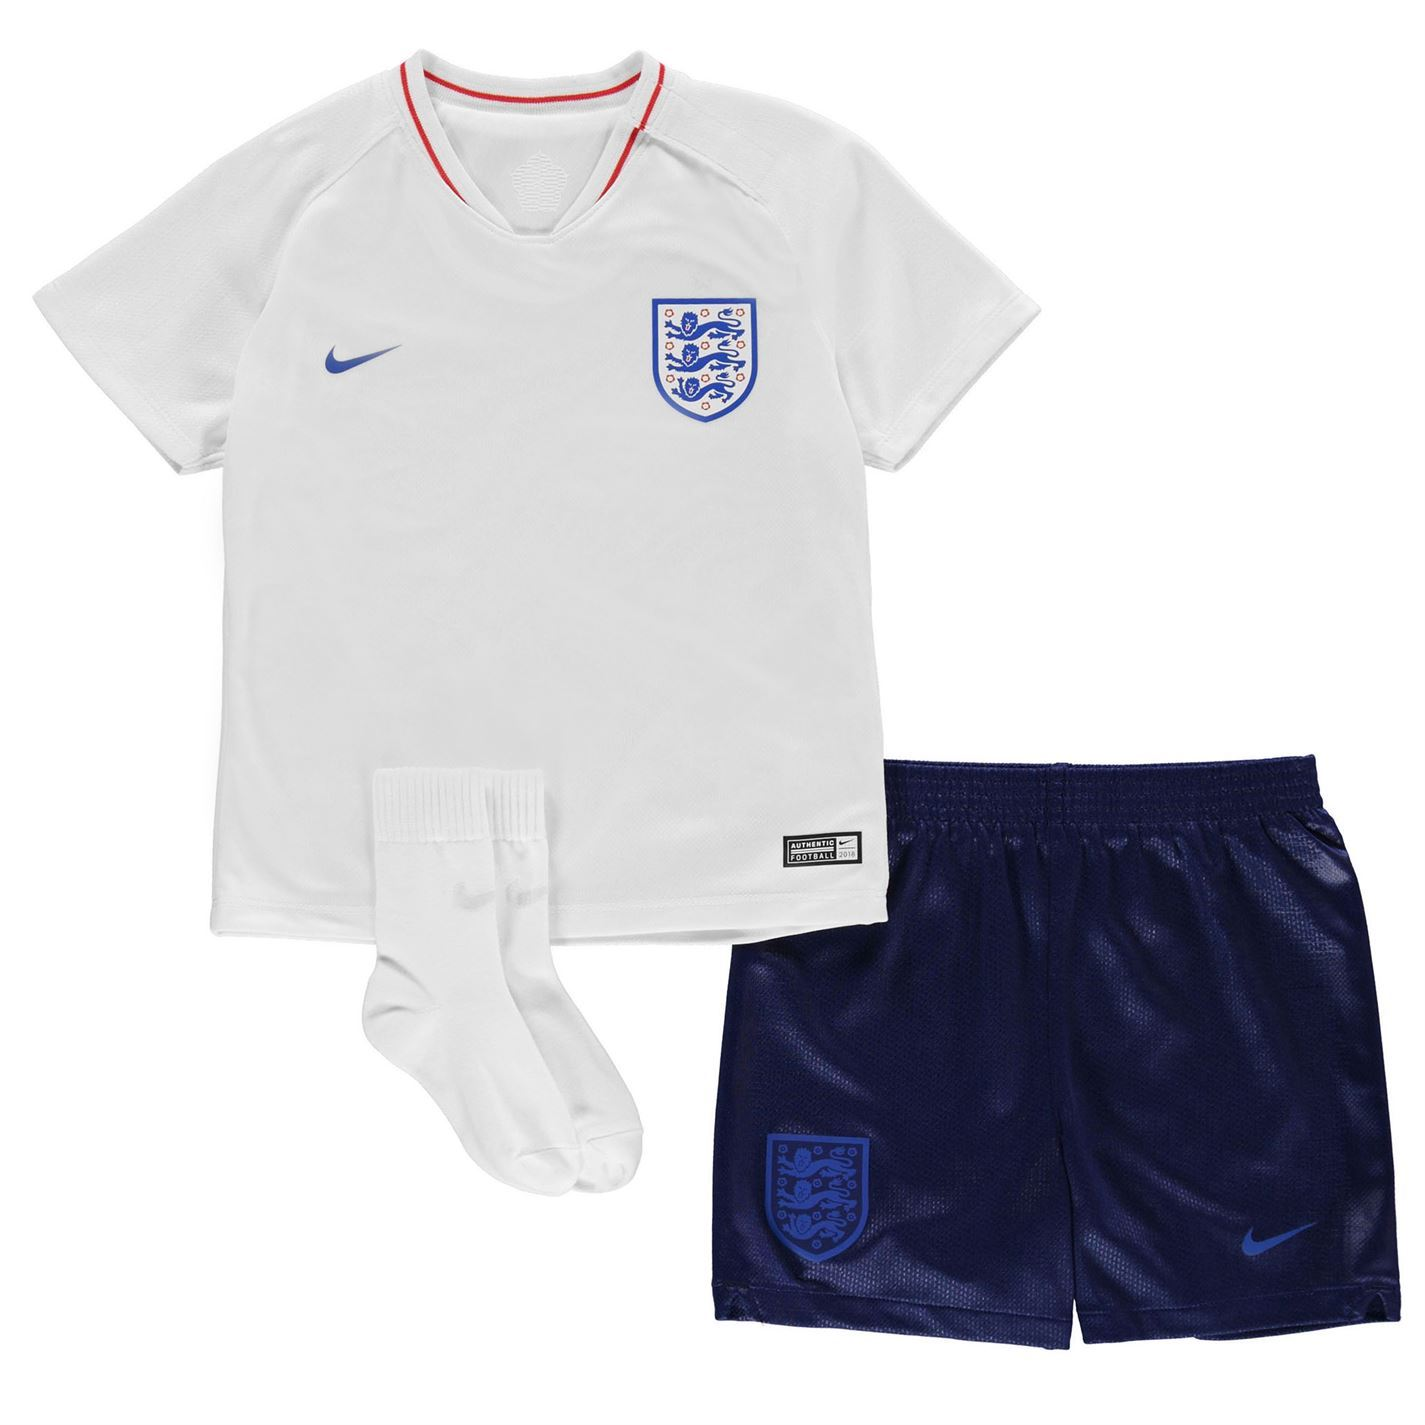 8684a20e0bb8ed ... Camicia Top Nike Inghilterra Home Baby Kit 2018 neonati bianco/Royal  Football Soccer ...